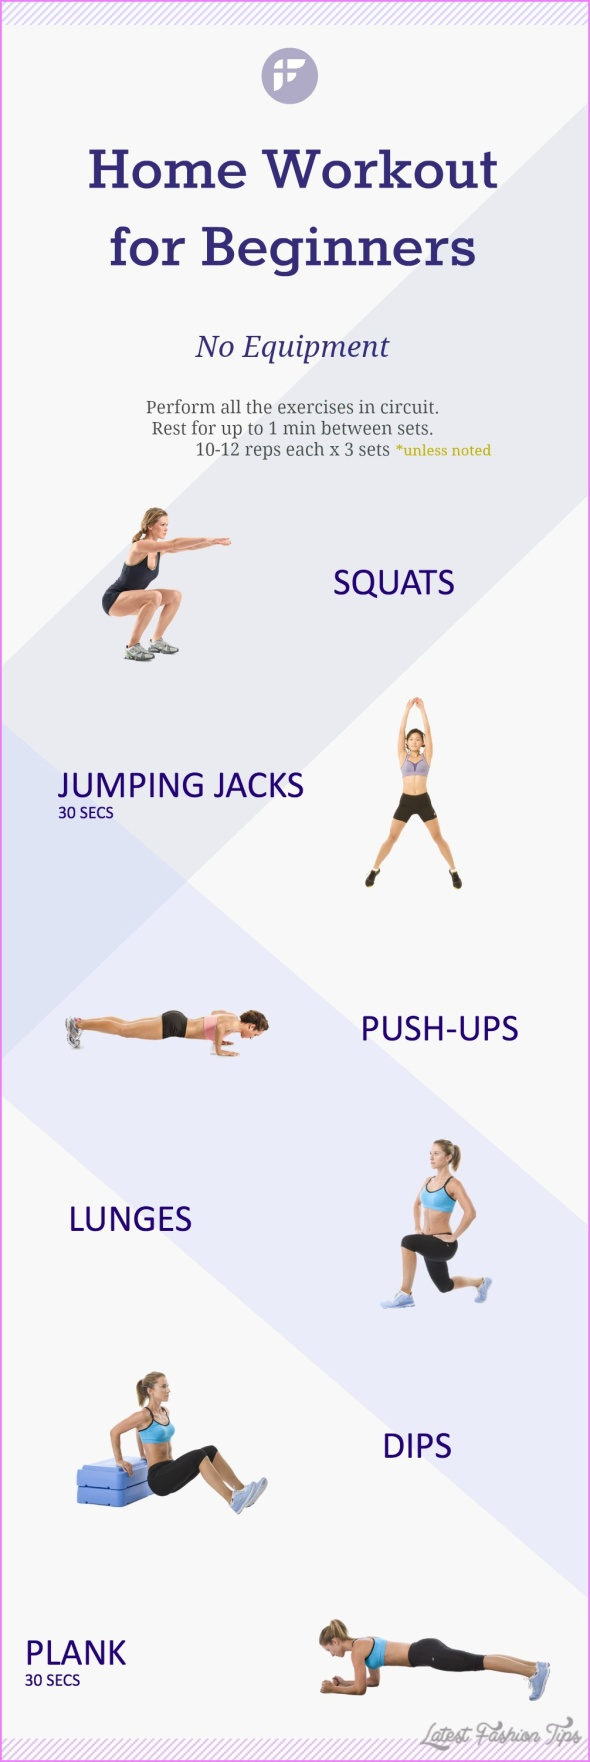 Weight Loss Exercise Routine For Beginners _11.jpg